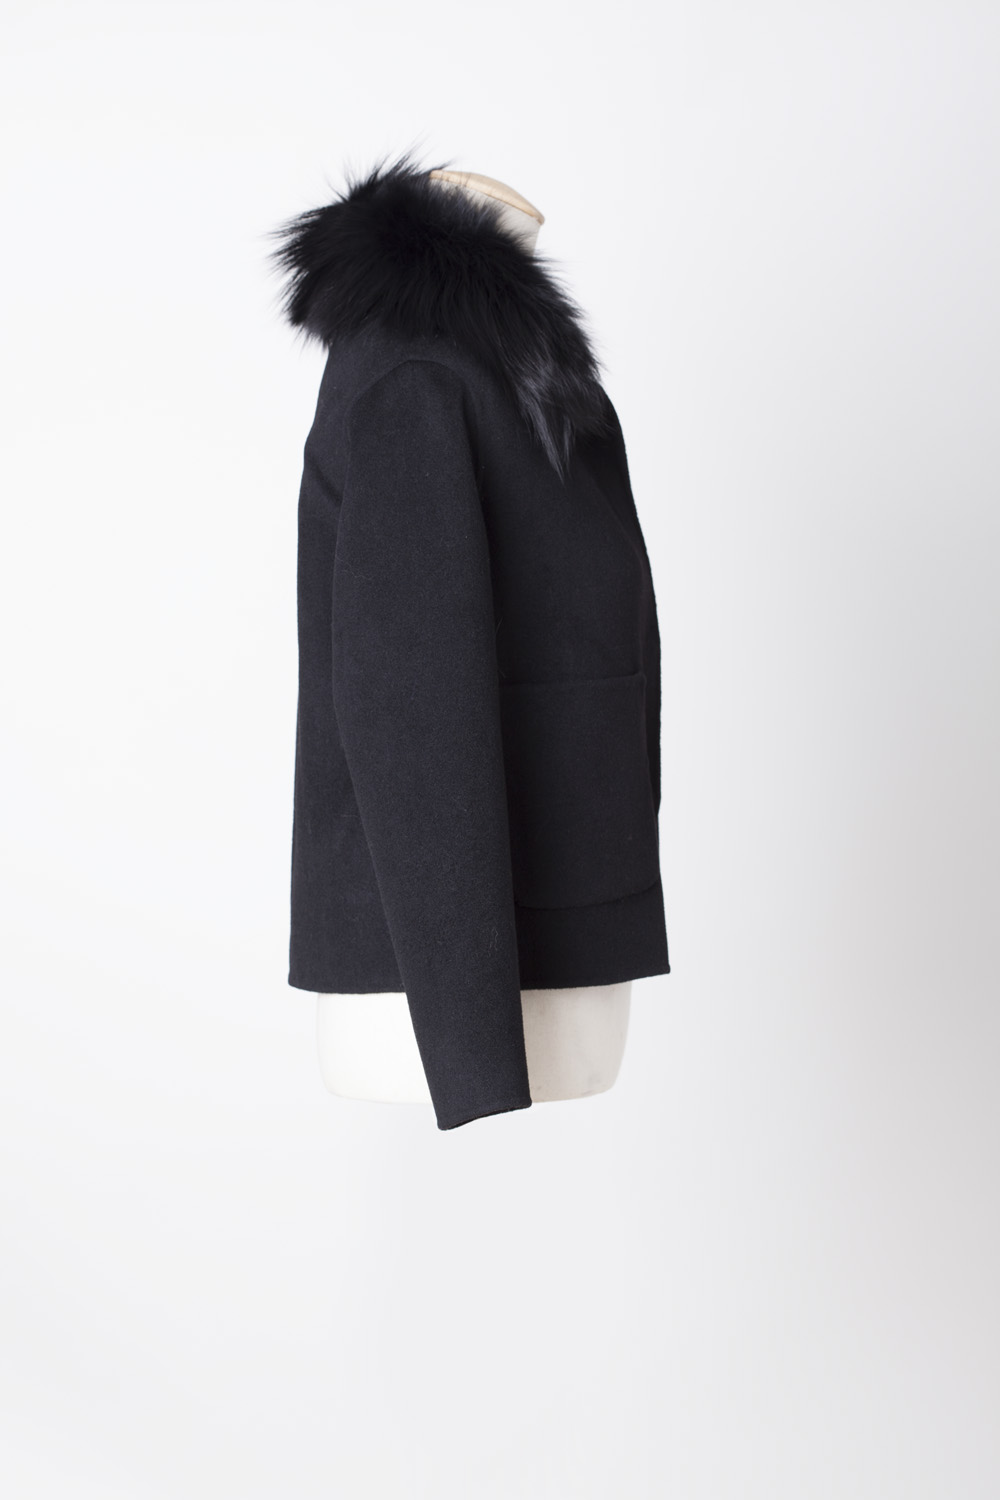 Short Black Wool Coat With Detachable Fur Collar Laurie